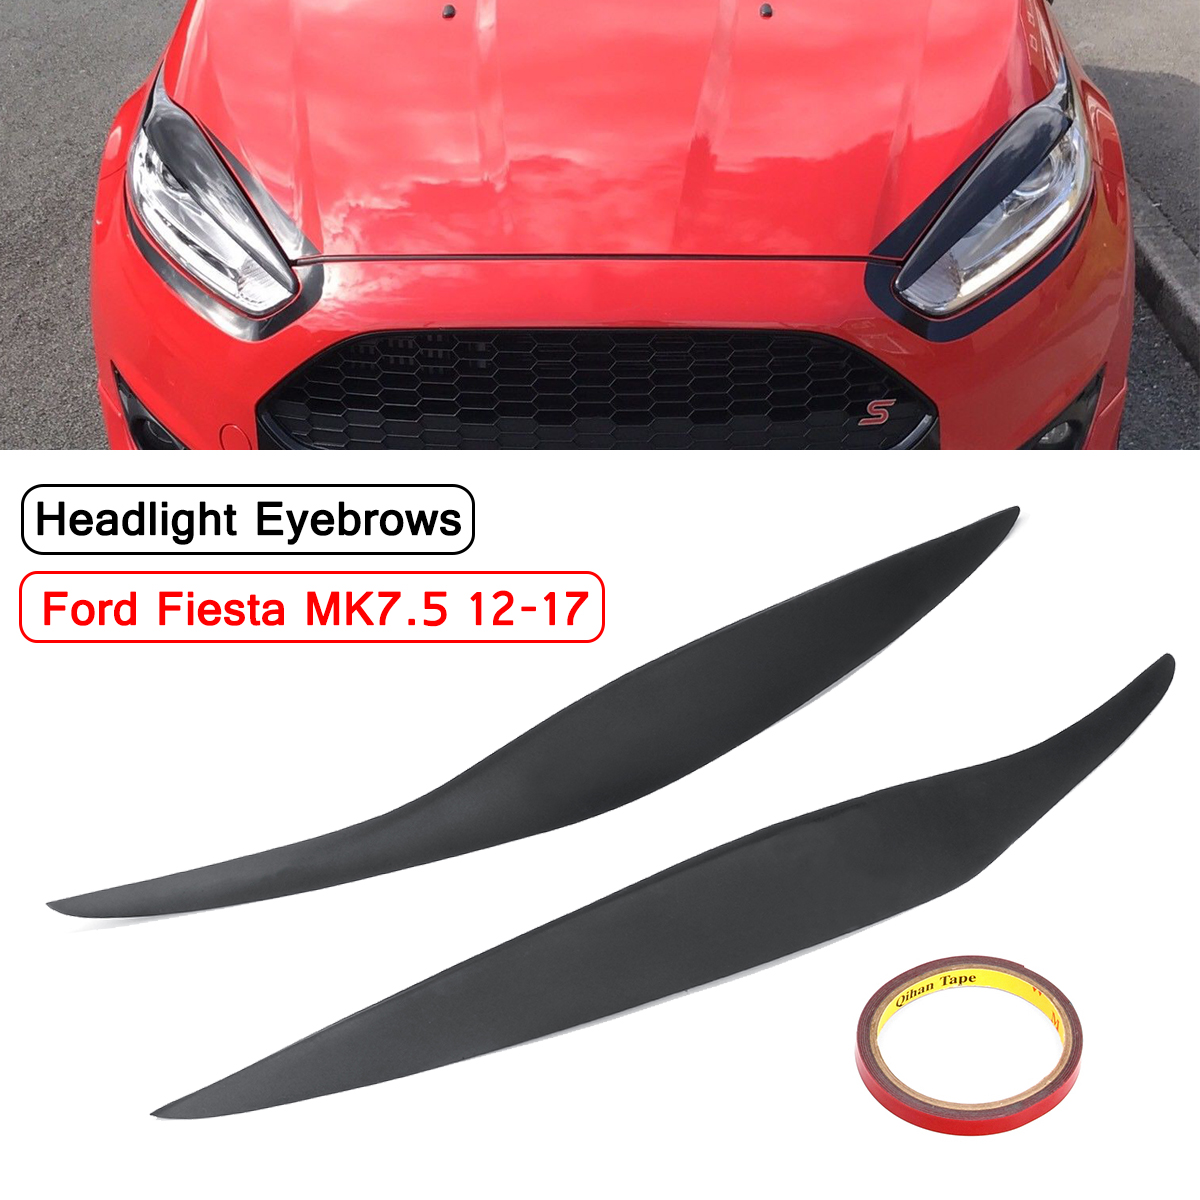 Car Front Headlight Facelift Eyebrow Eyelids Cover Lid For Ford Fiesta Mk7 5 Mk8 Archives Statelegals Staradvertiser Com